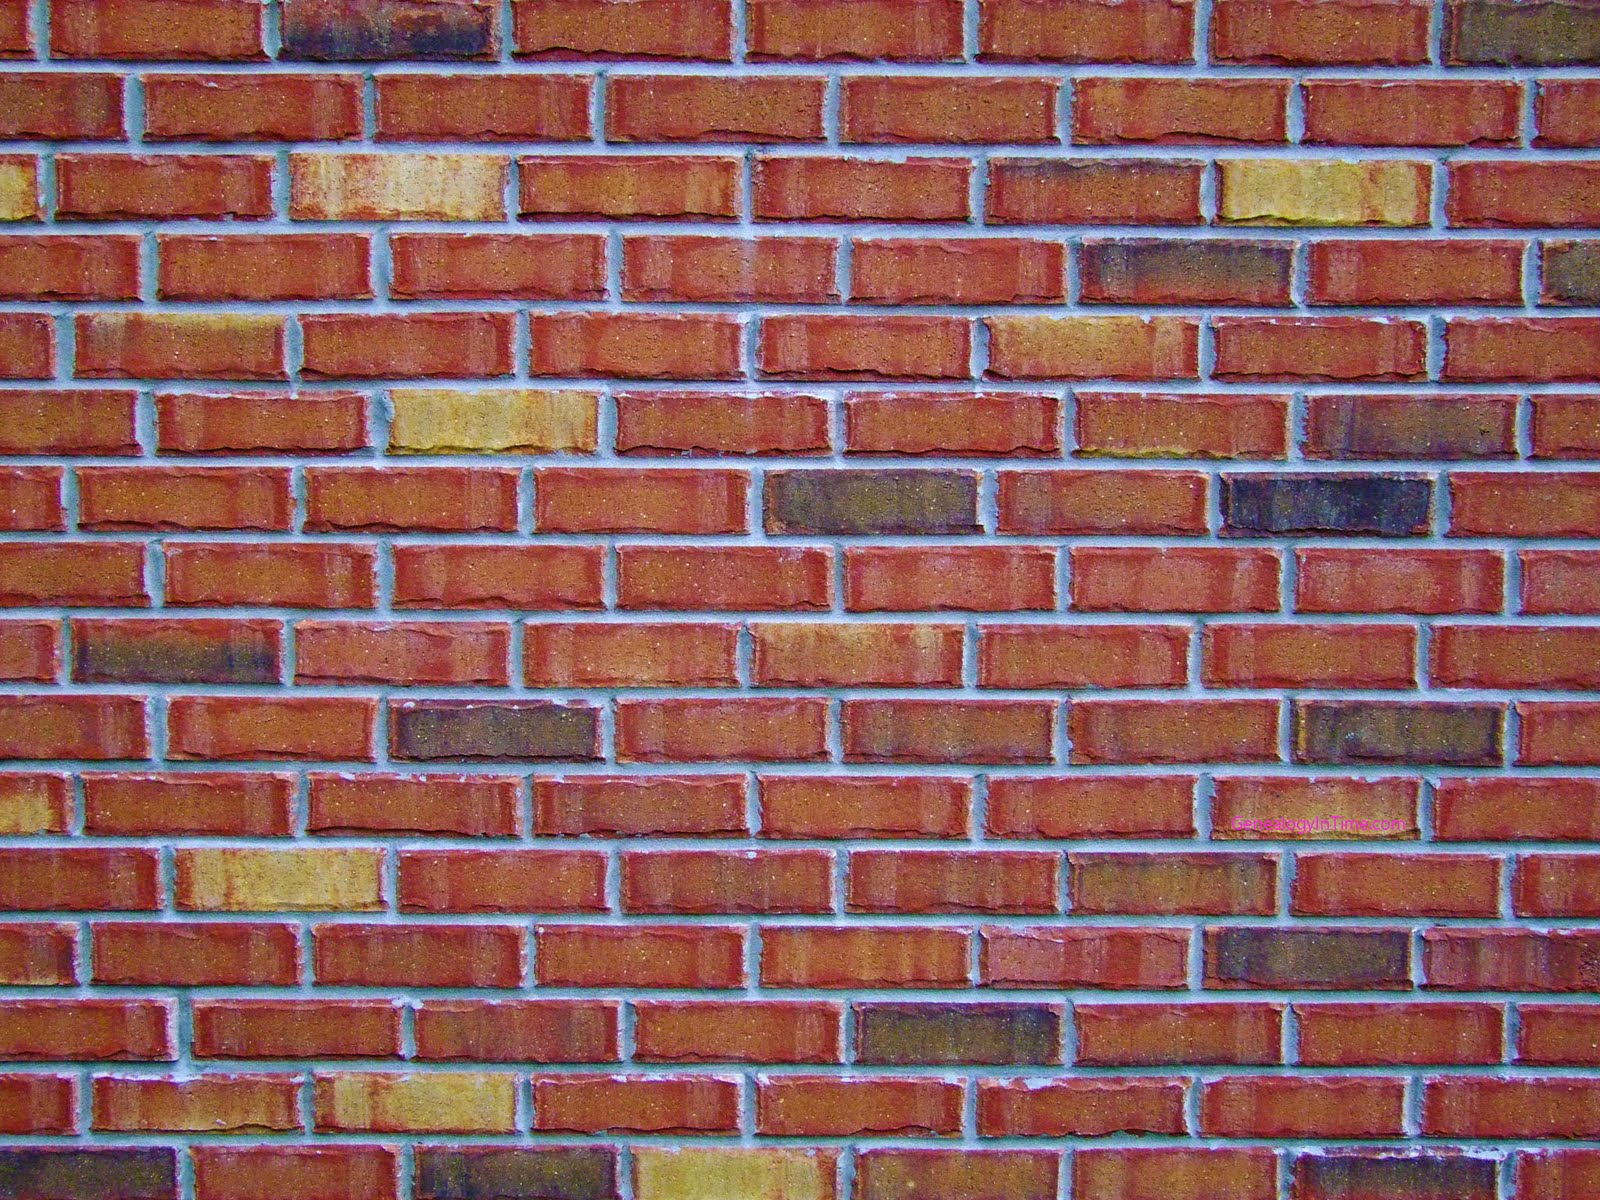 Wallpaper blog brick hd for Wallpaper images for house walls